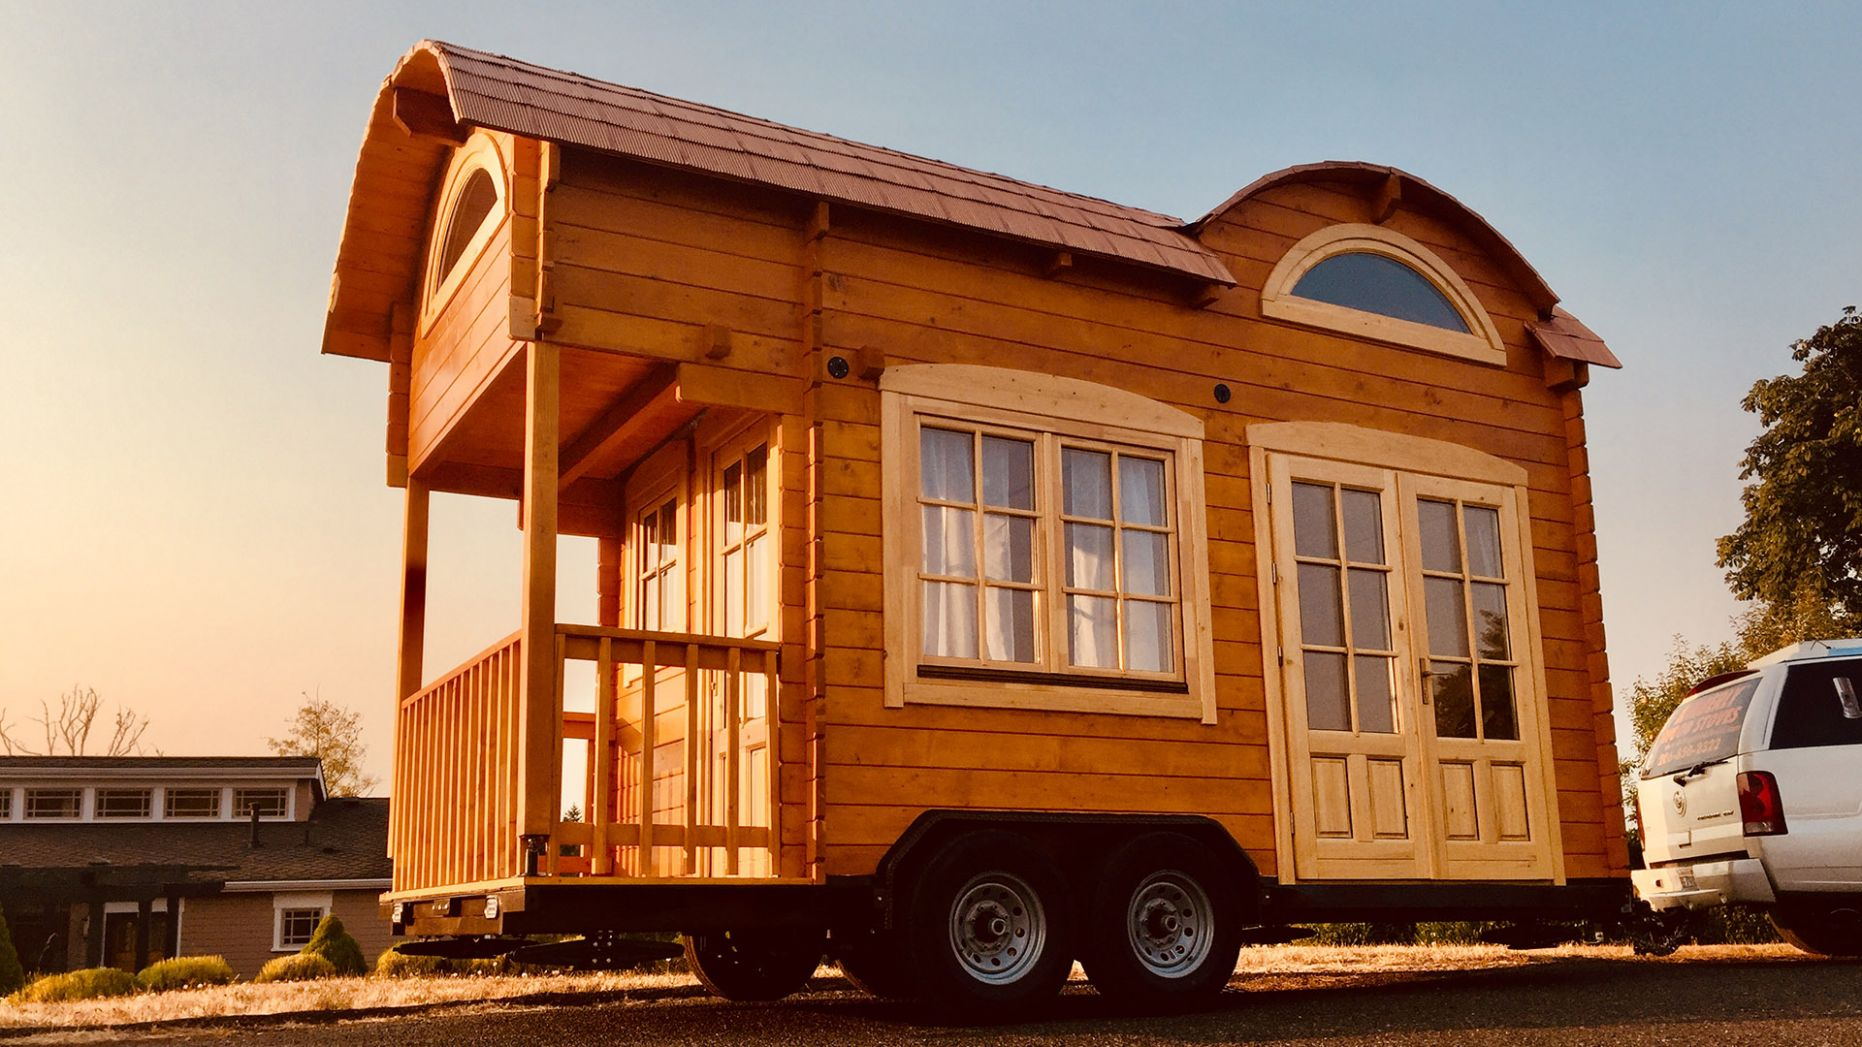 Unforgettable Tiny House™ | Affordable Tiny House & Cabin Kits - tiny house kits